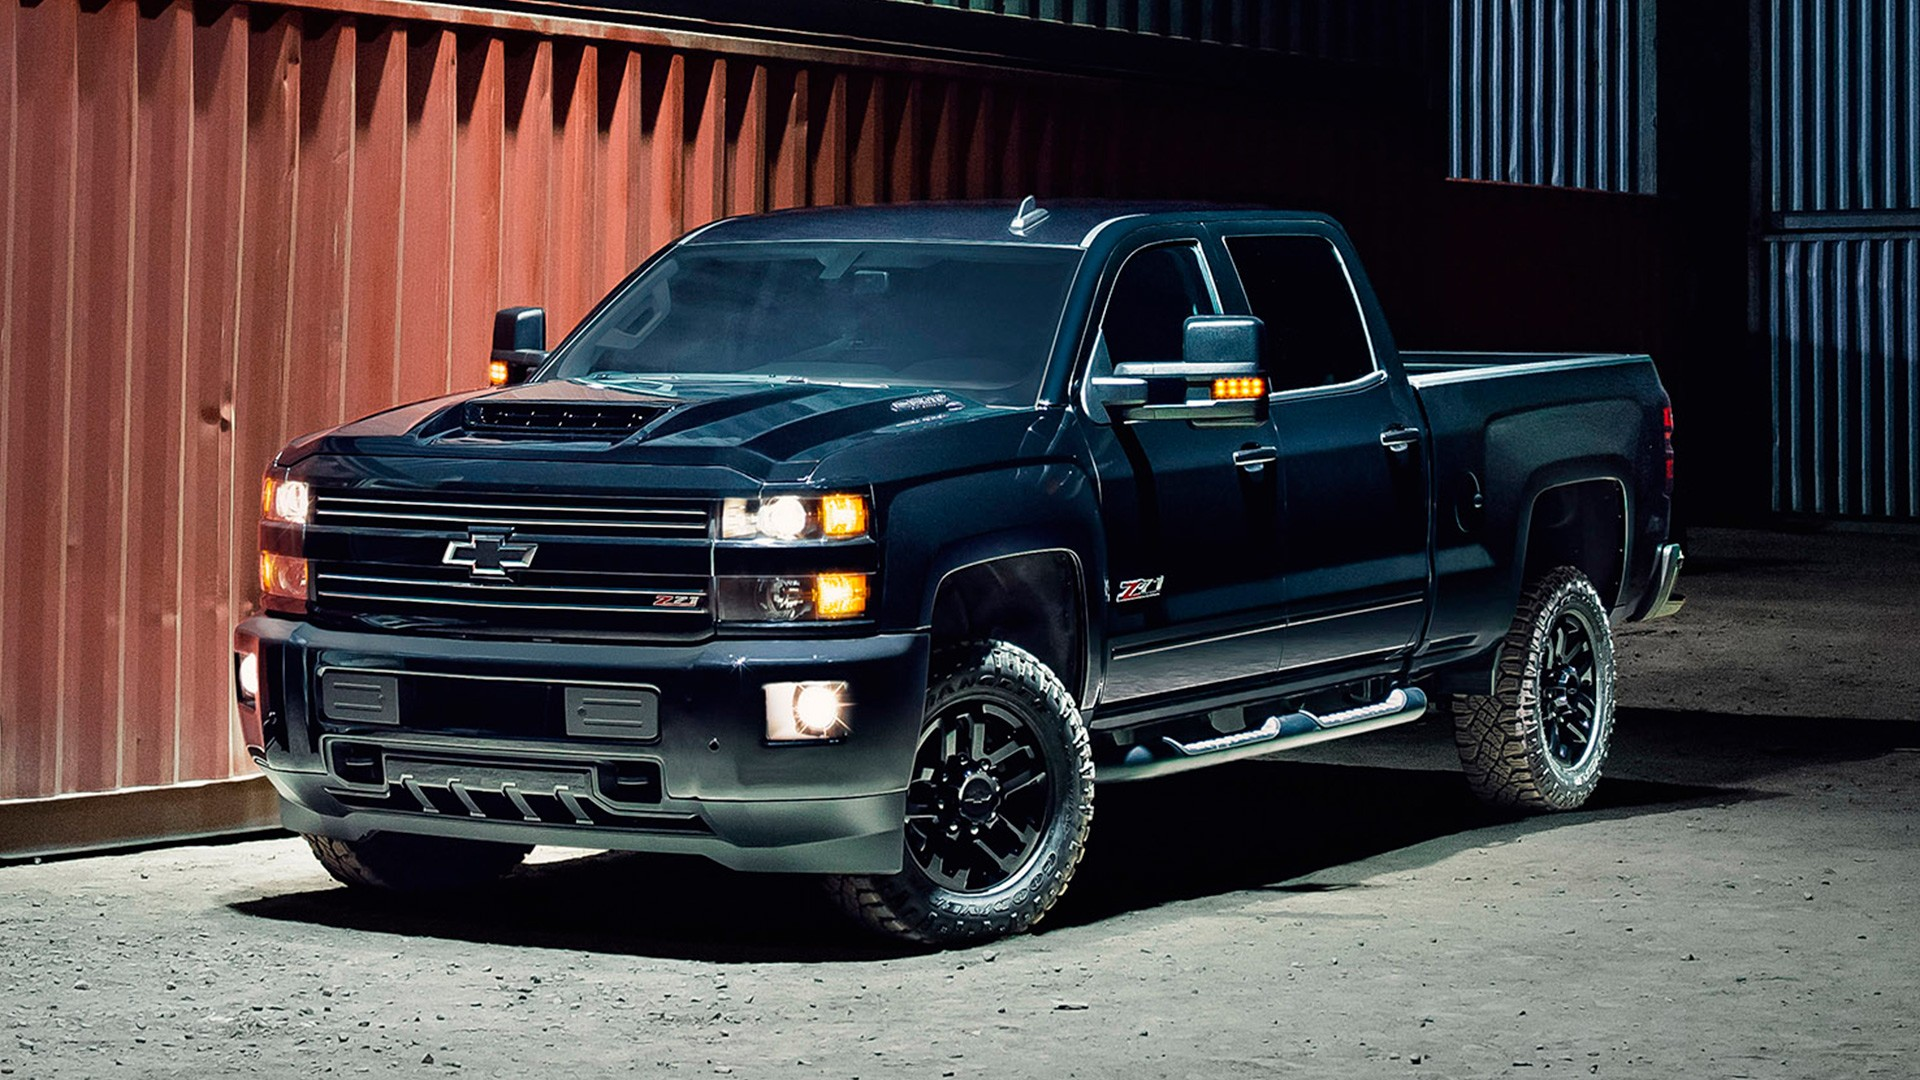 2018 Chevrolet Silverado Hd Coming To Australia With